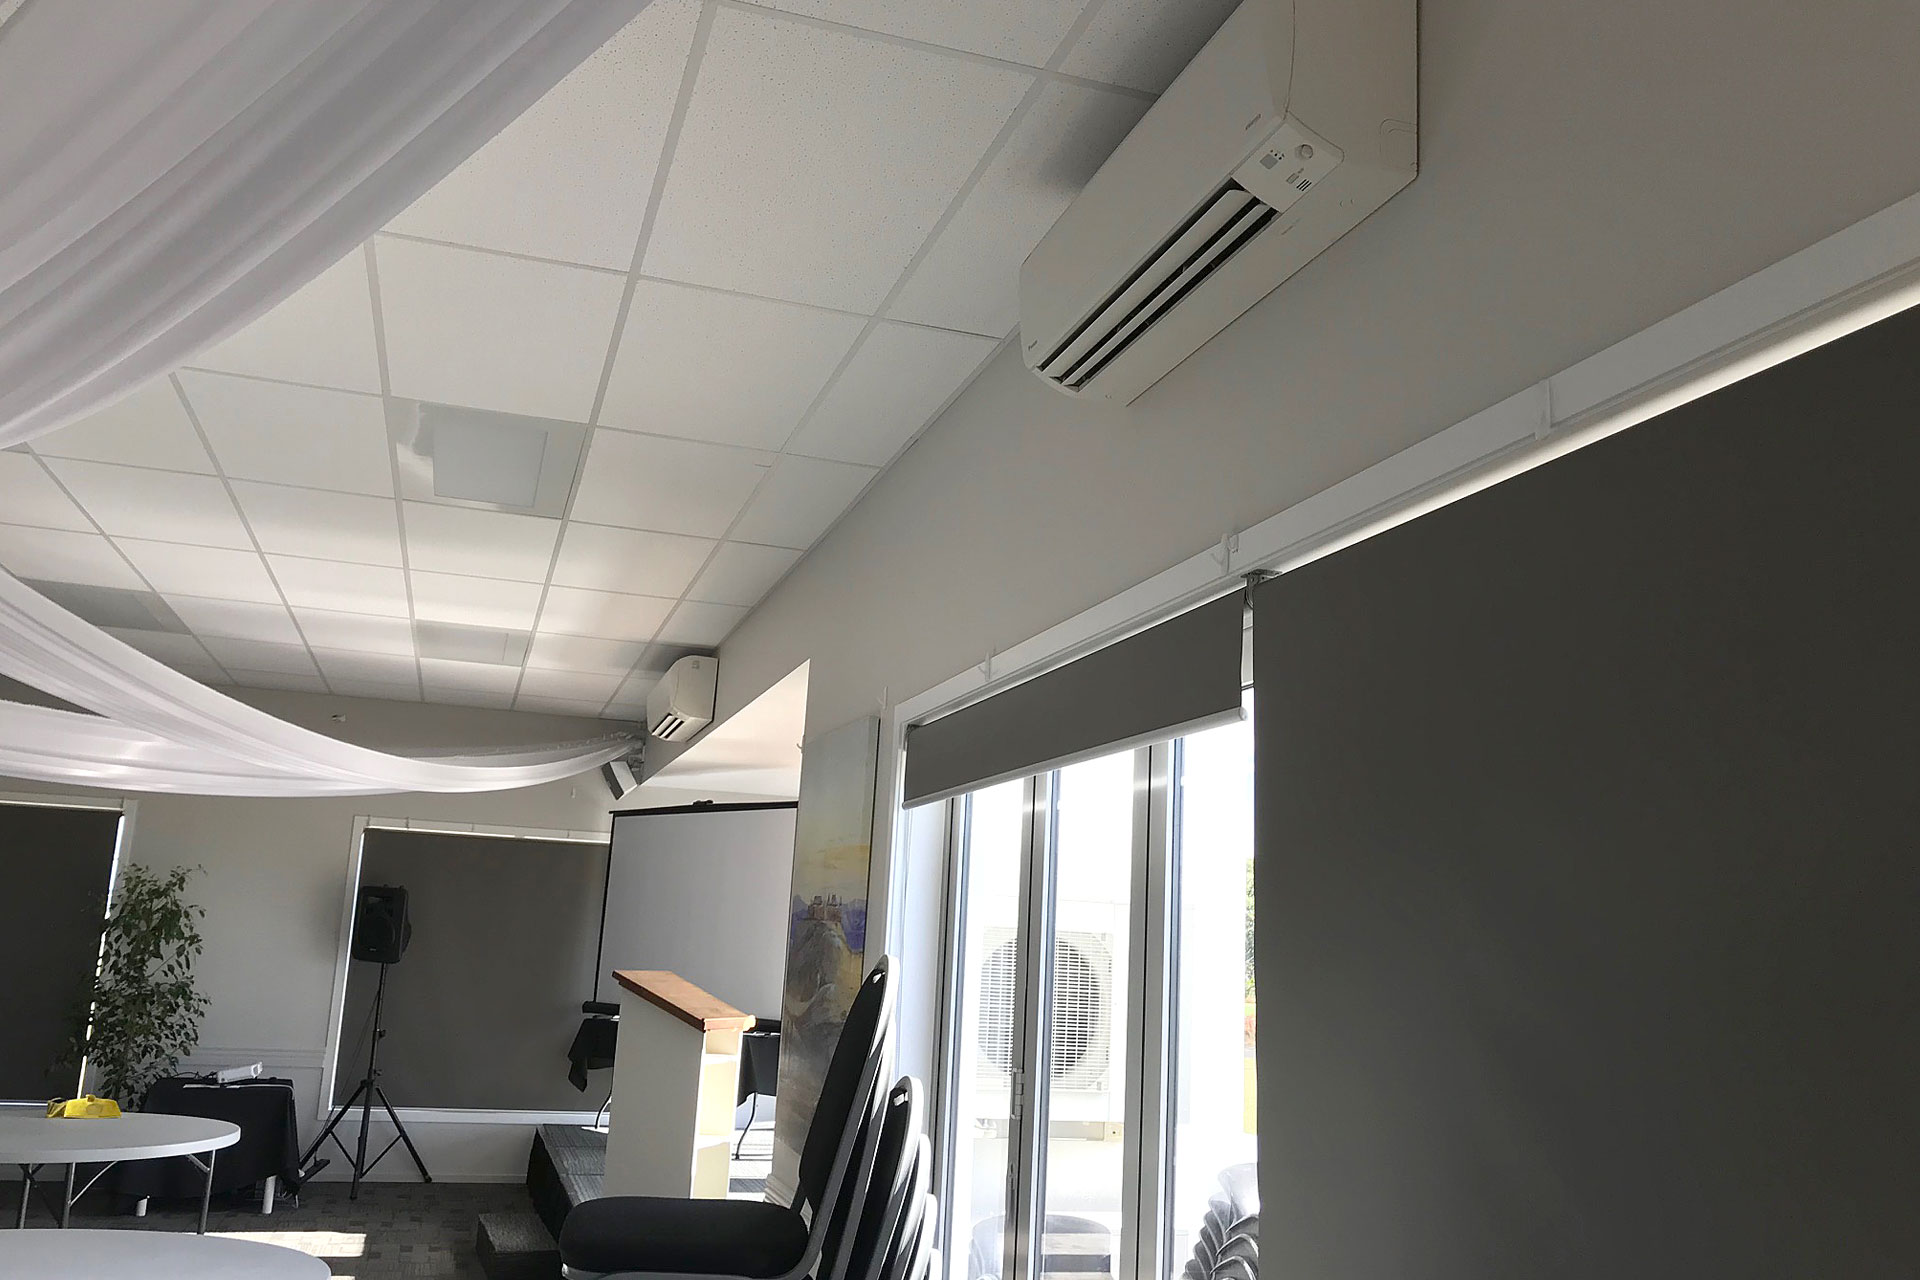 https://superchill.co.nz/wp-content/uploads/2019/06/img-superchill-gateway-conference-room.jpg